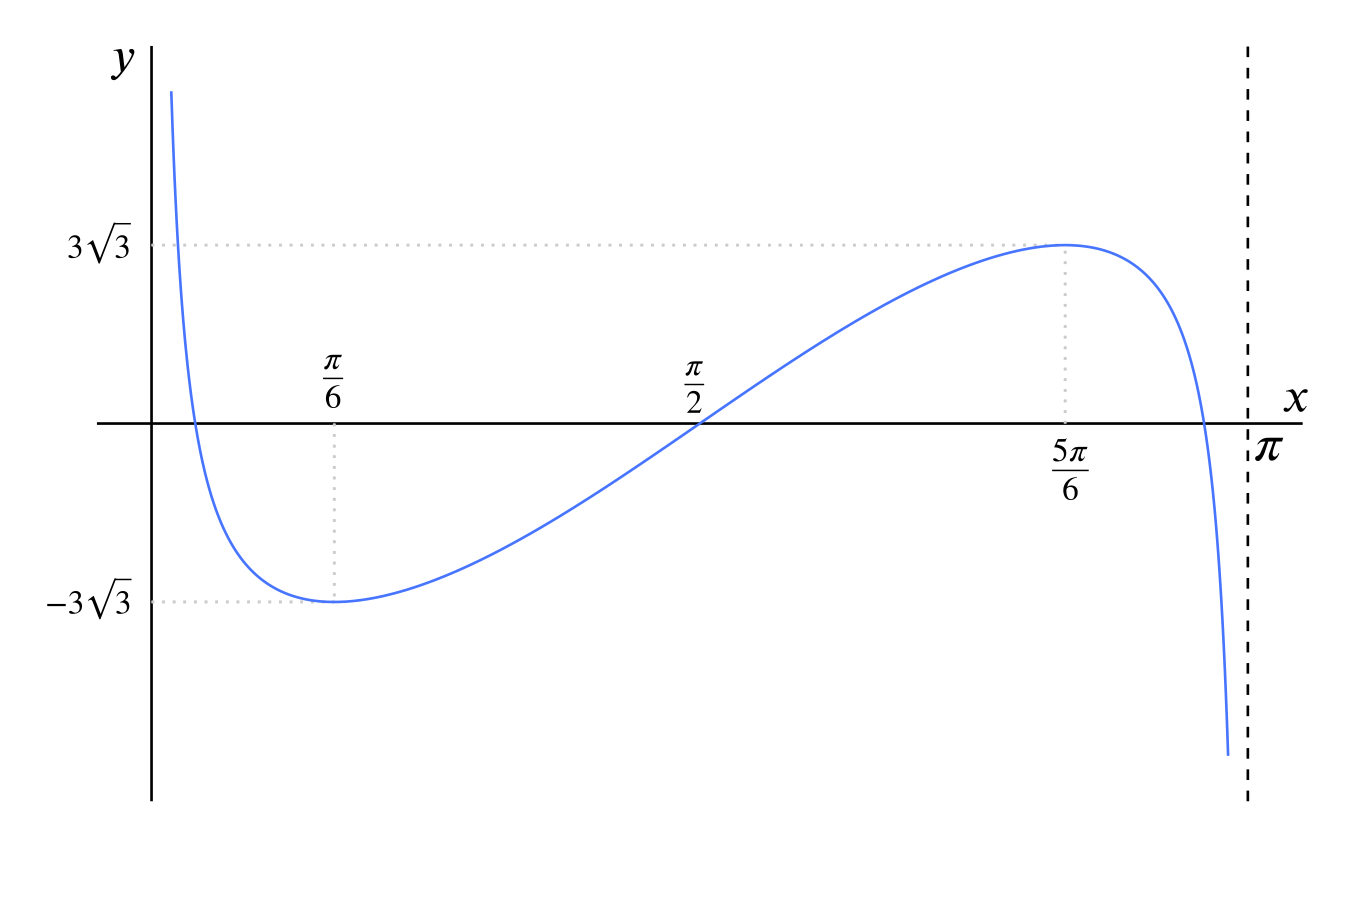 A curve coming down from infinity at x = 0, going below the x axis, reaching a minimum and coming up above the x axis and having a maximum, then going back down to negative infinity as x tends to pi.